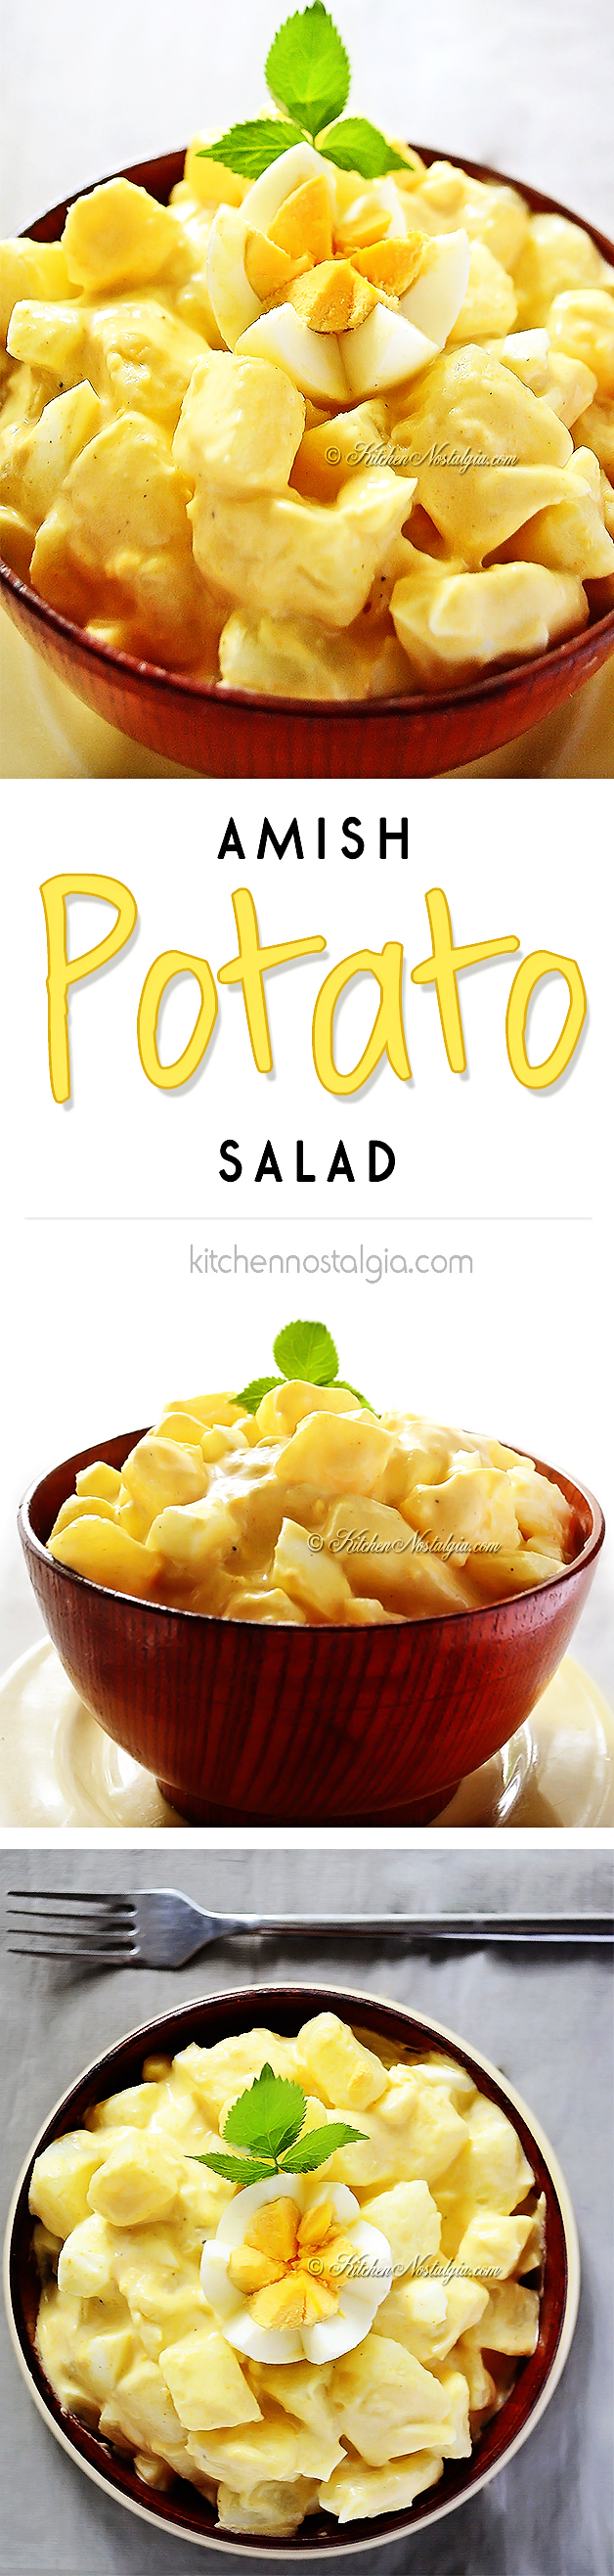 Amish Potato Salad - from kitchennostalgia.com